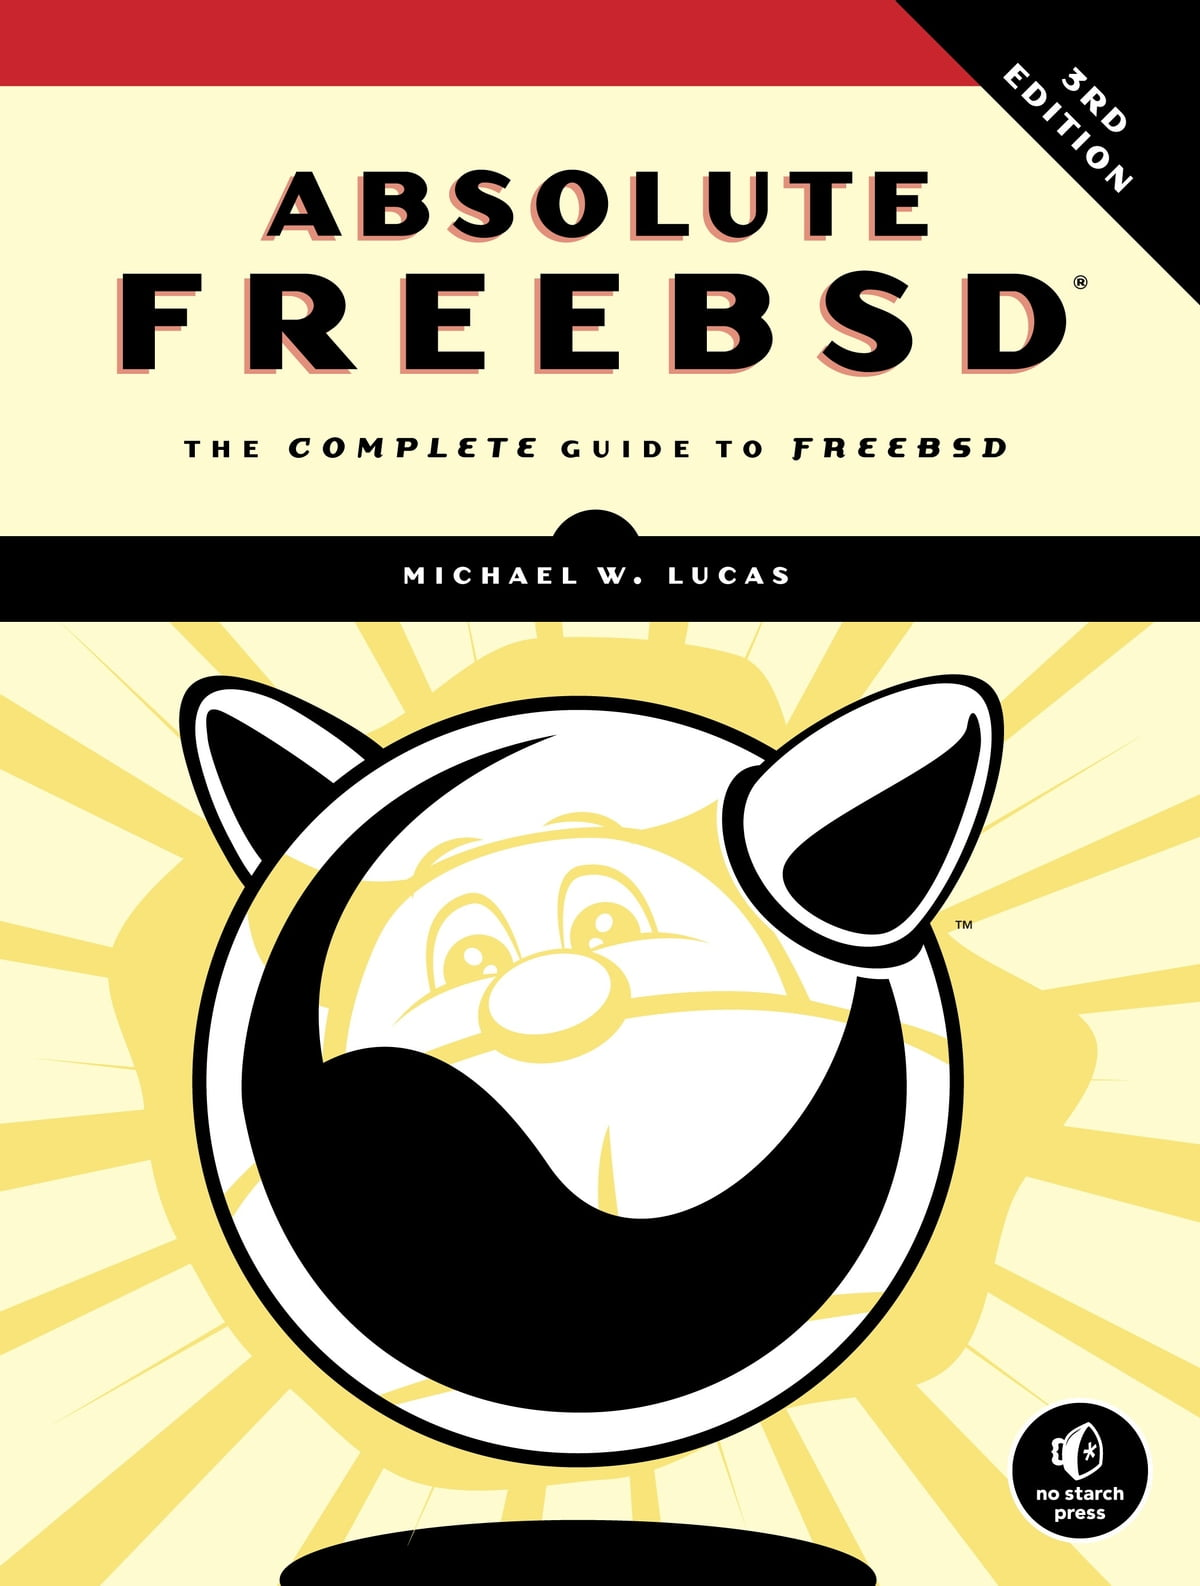 Freebsd mastery storage essentials ebook by michael w lucas absolute freebsd 3rd edition ebook by michael w lucas fandeluxe Choice Image